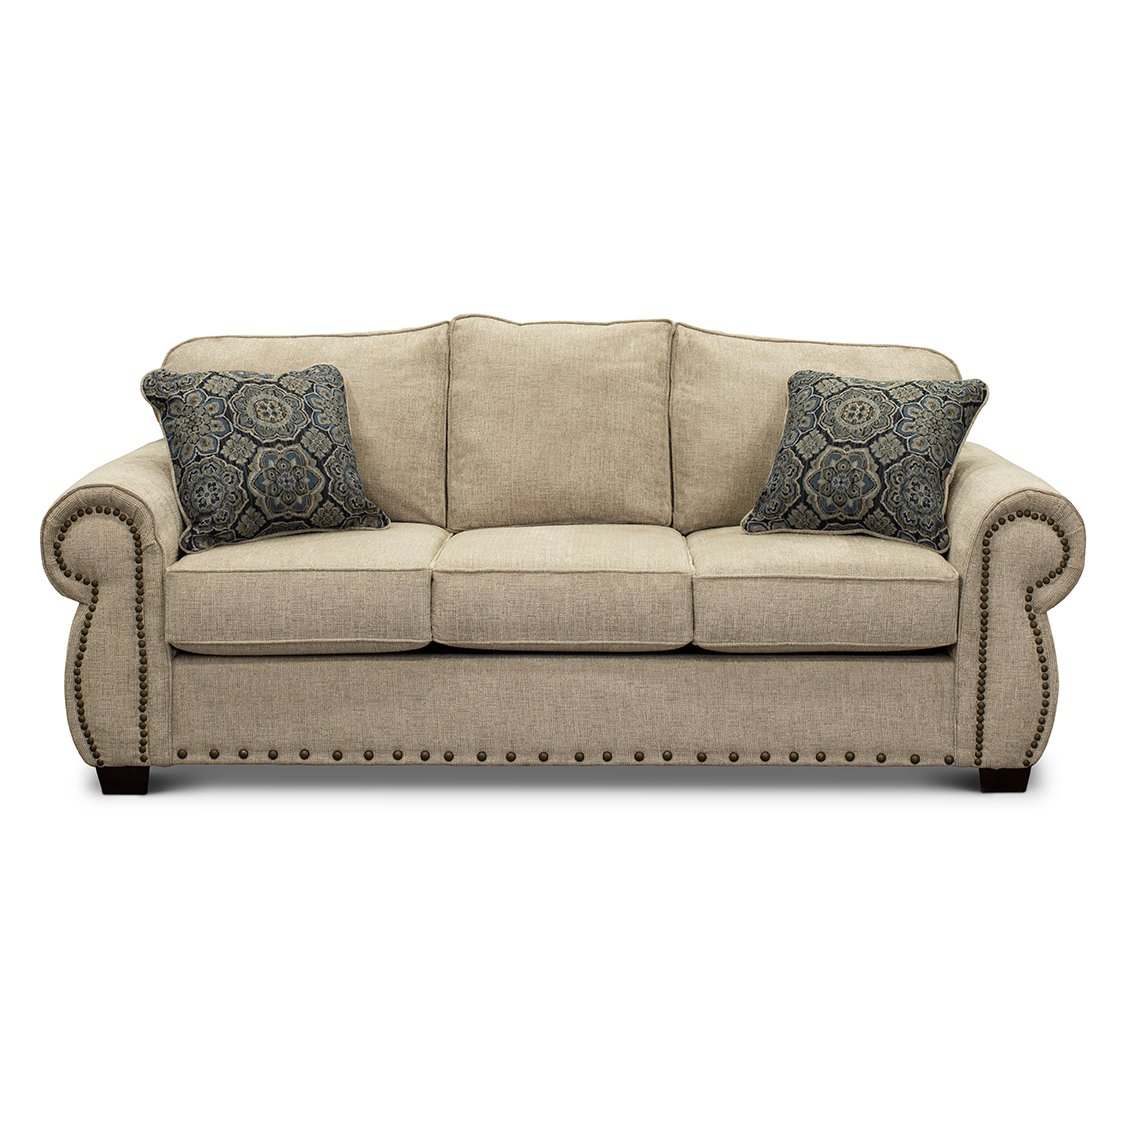 Strange Casual Traditional Canvas Tan Sofa Bed Southport Beatyapartments Chair Design Images Beatyapartmentscom